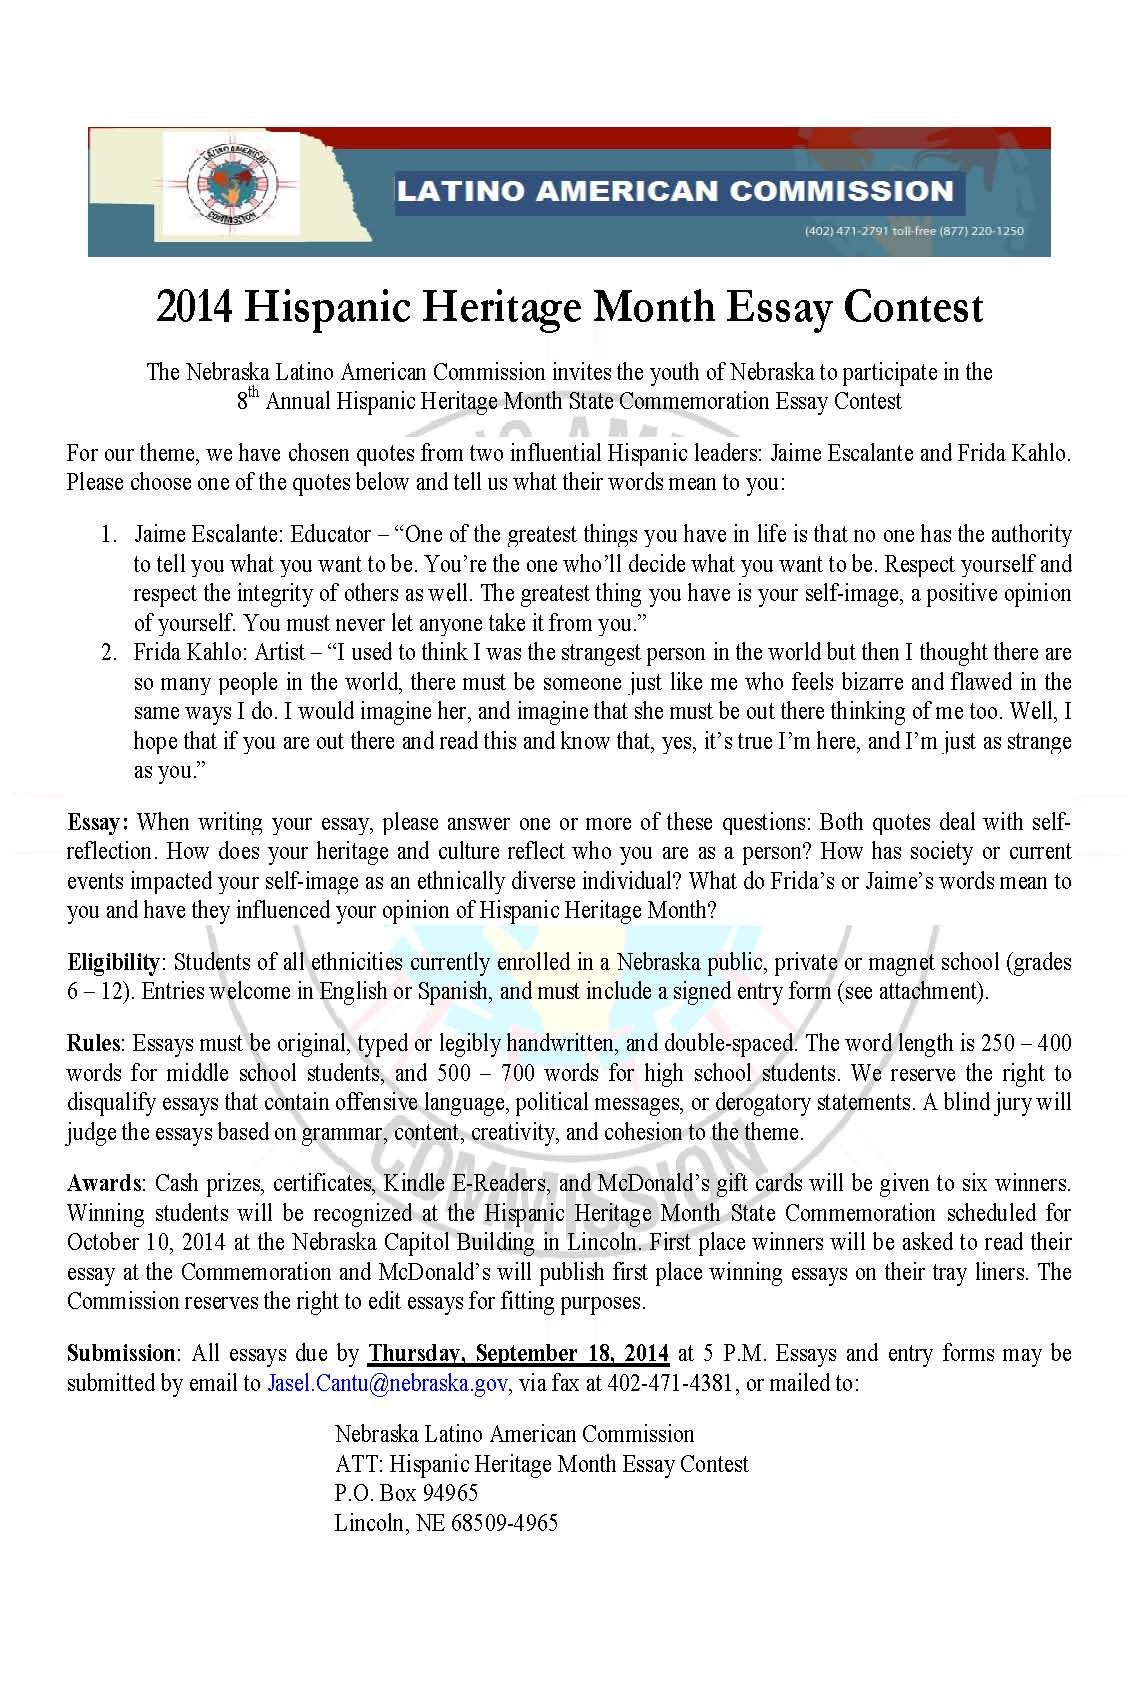 essay on american culture short essay on american culture n vs  essays on latino culture essays on latino culture